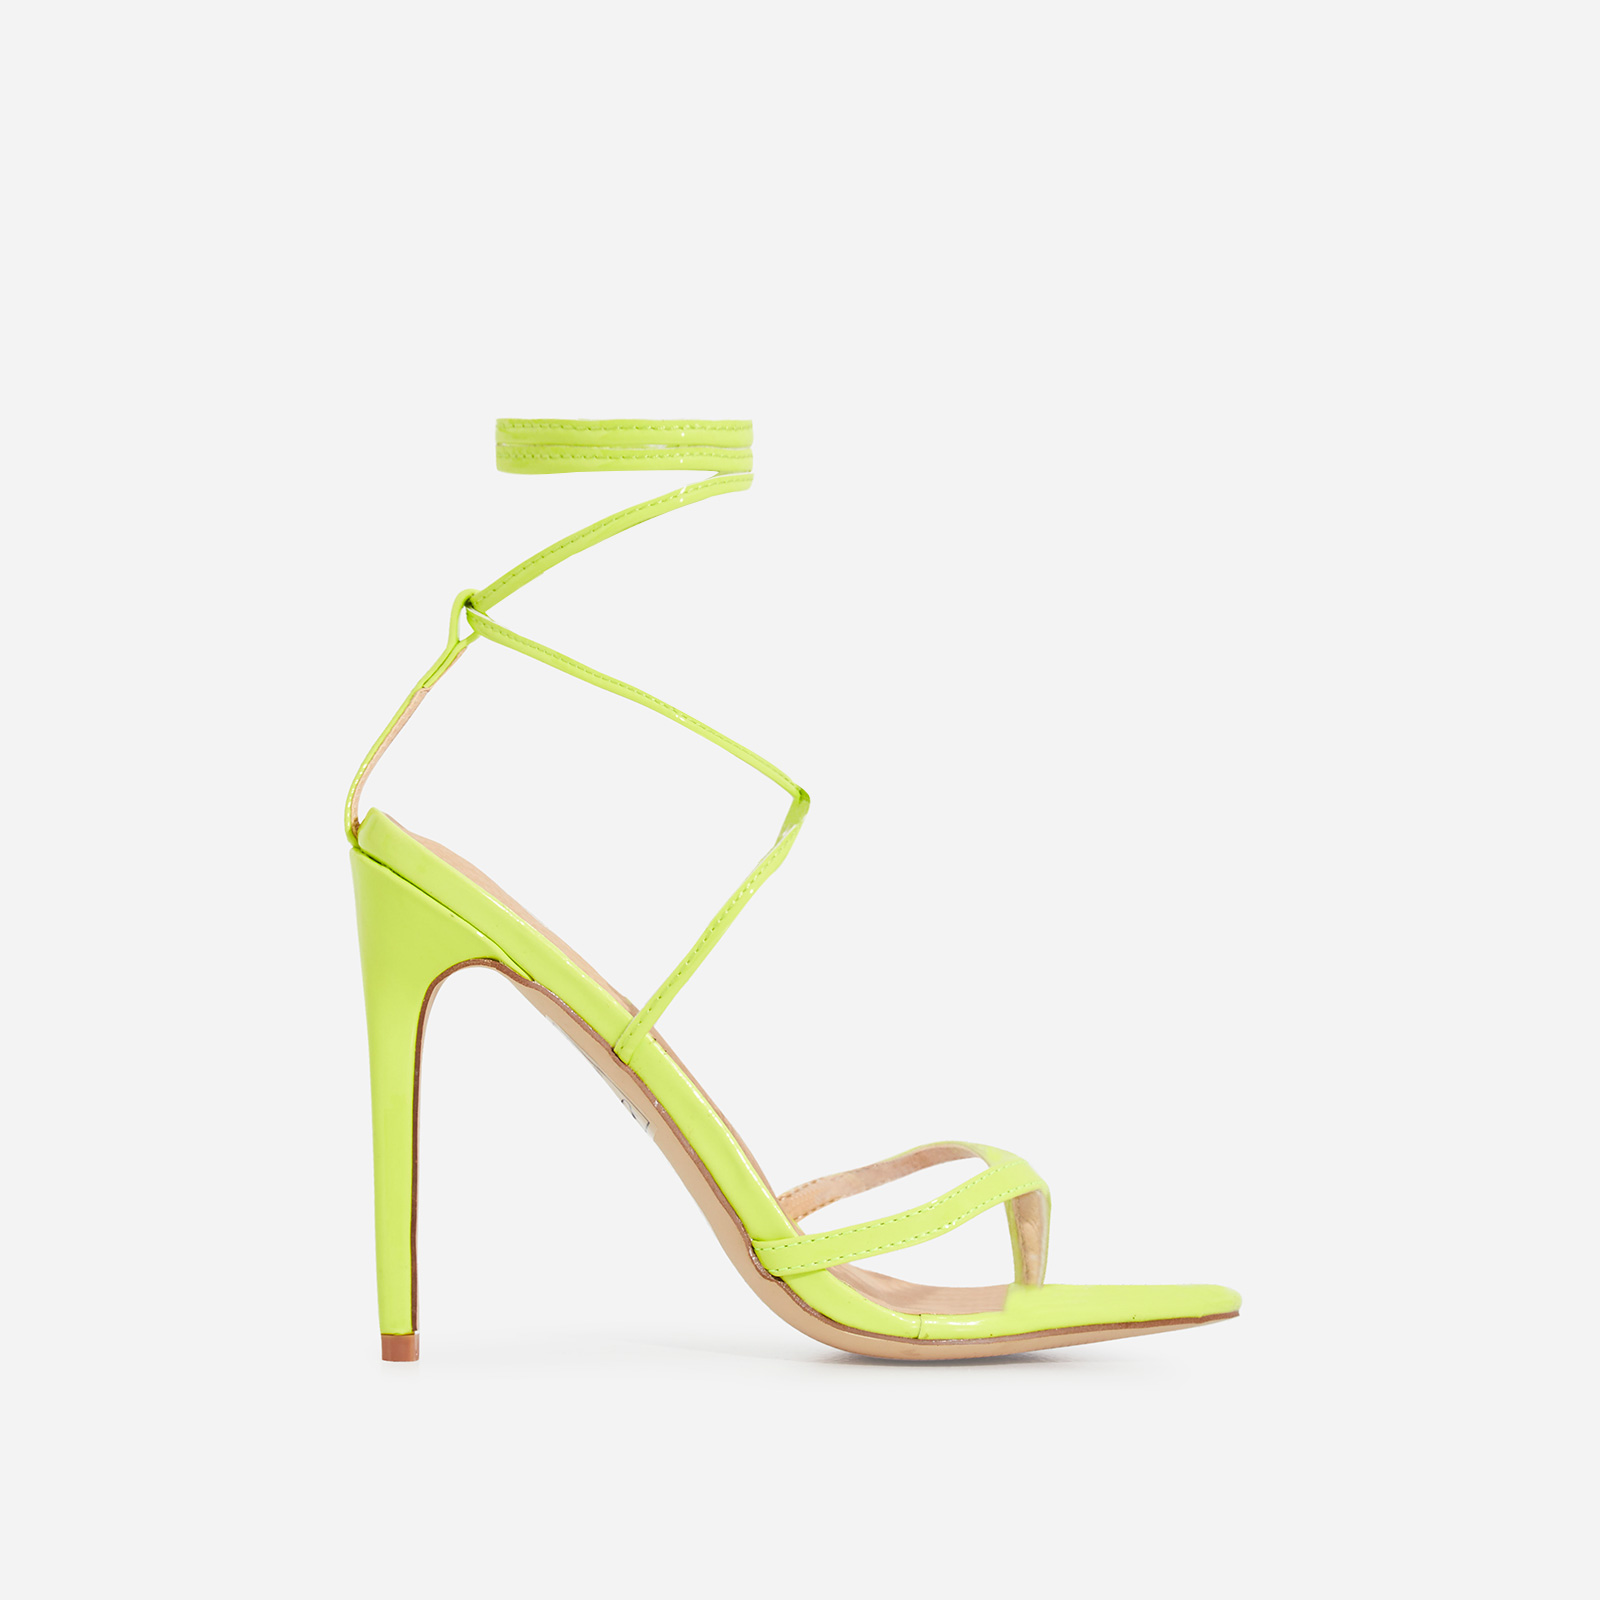 Malina Lace Up Heel In Neon Green Patent